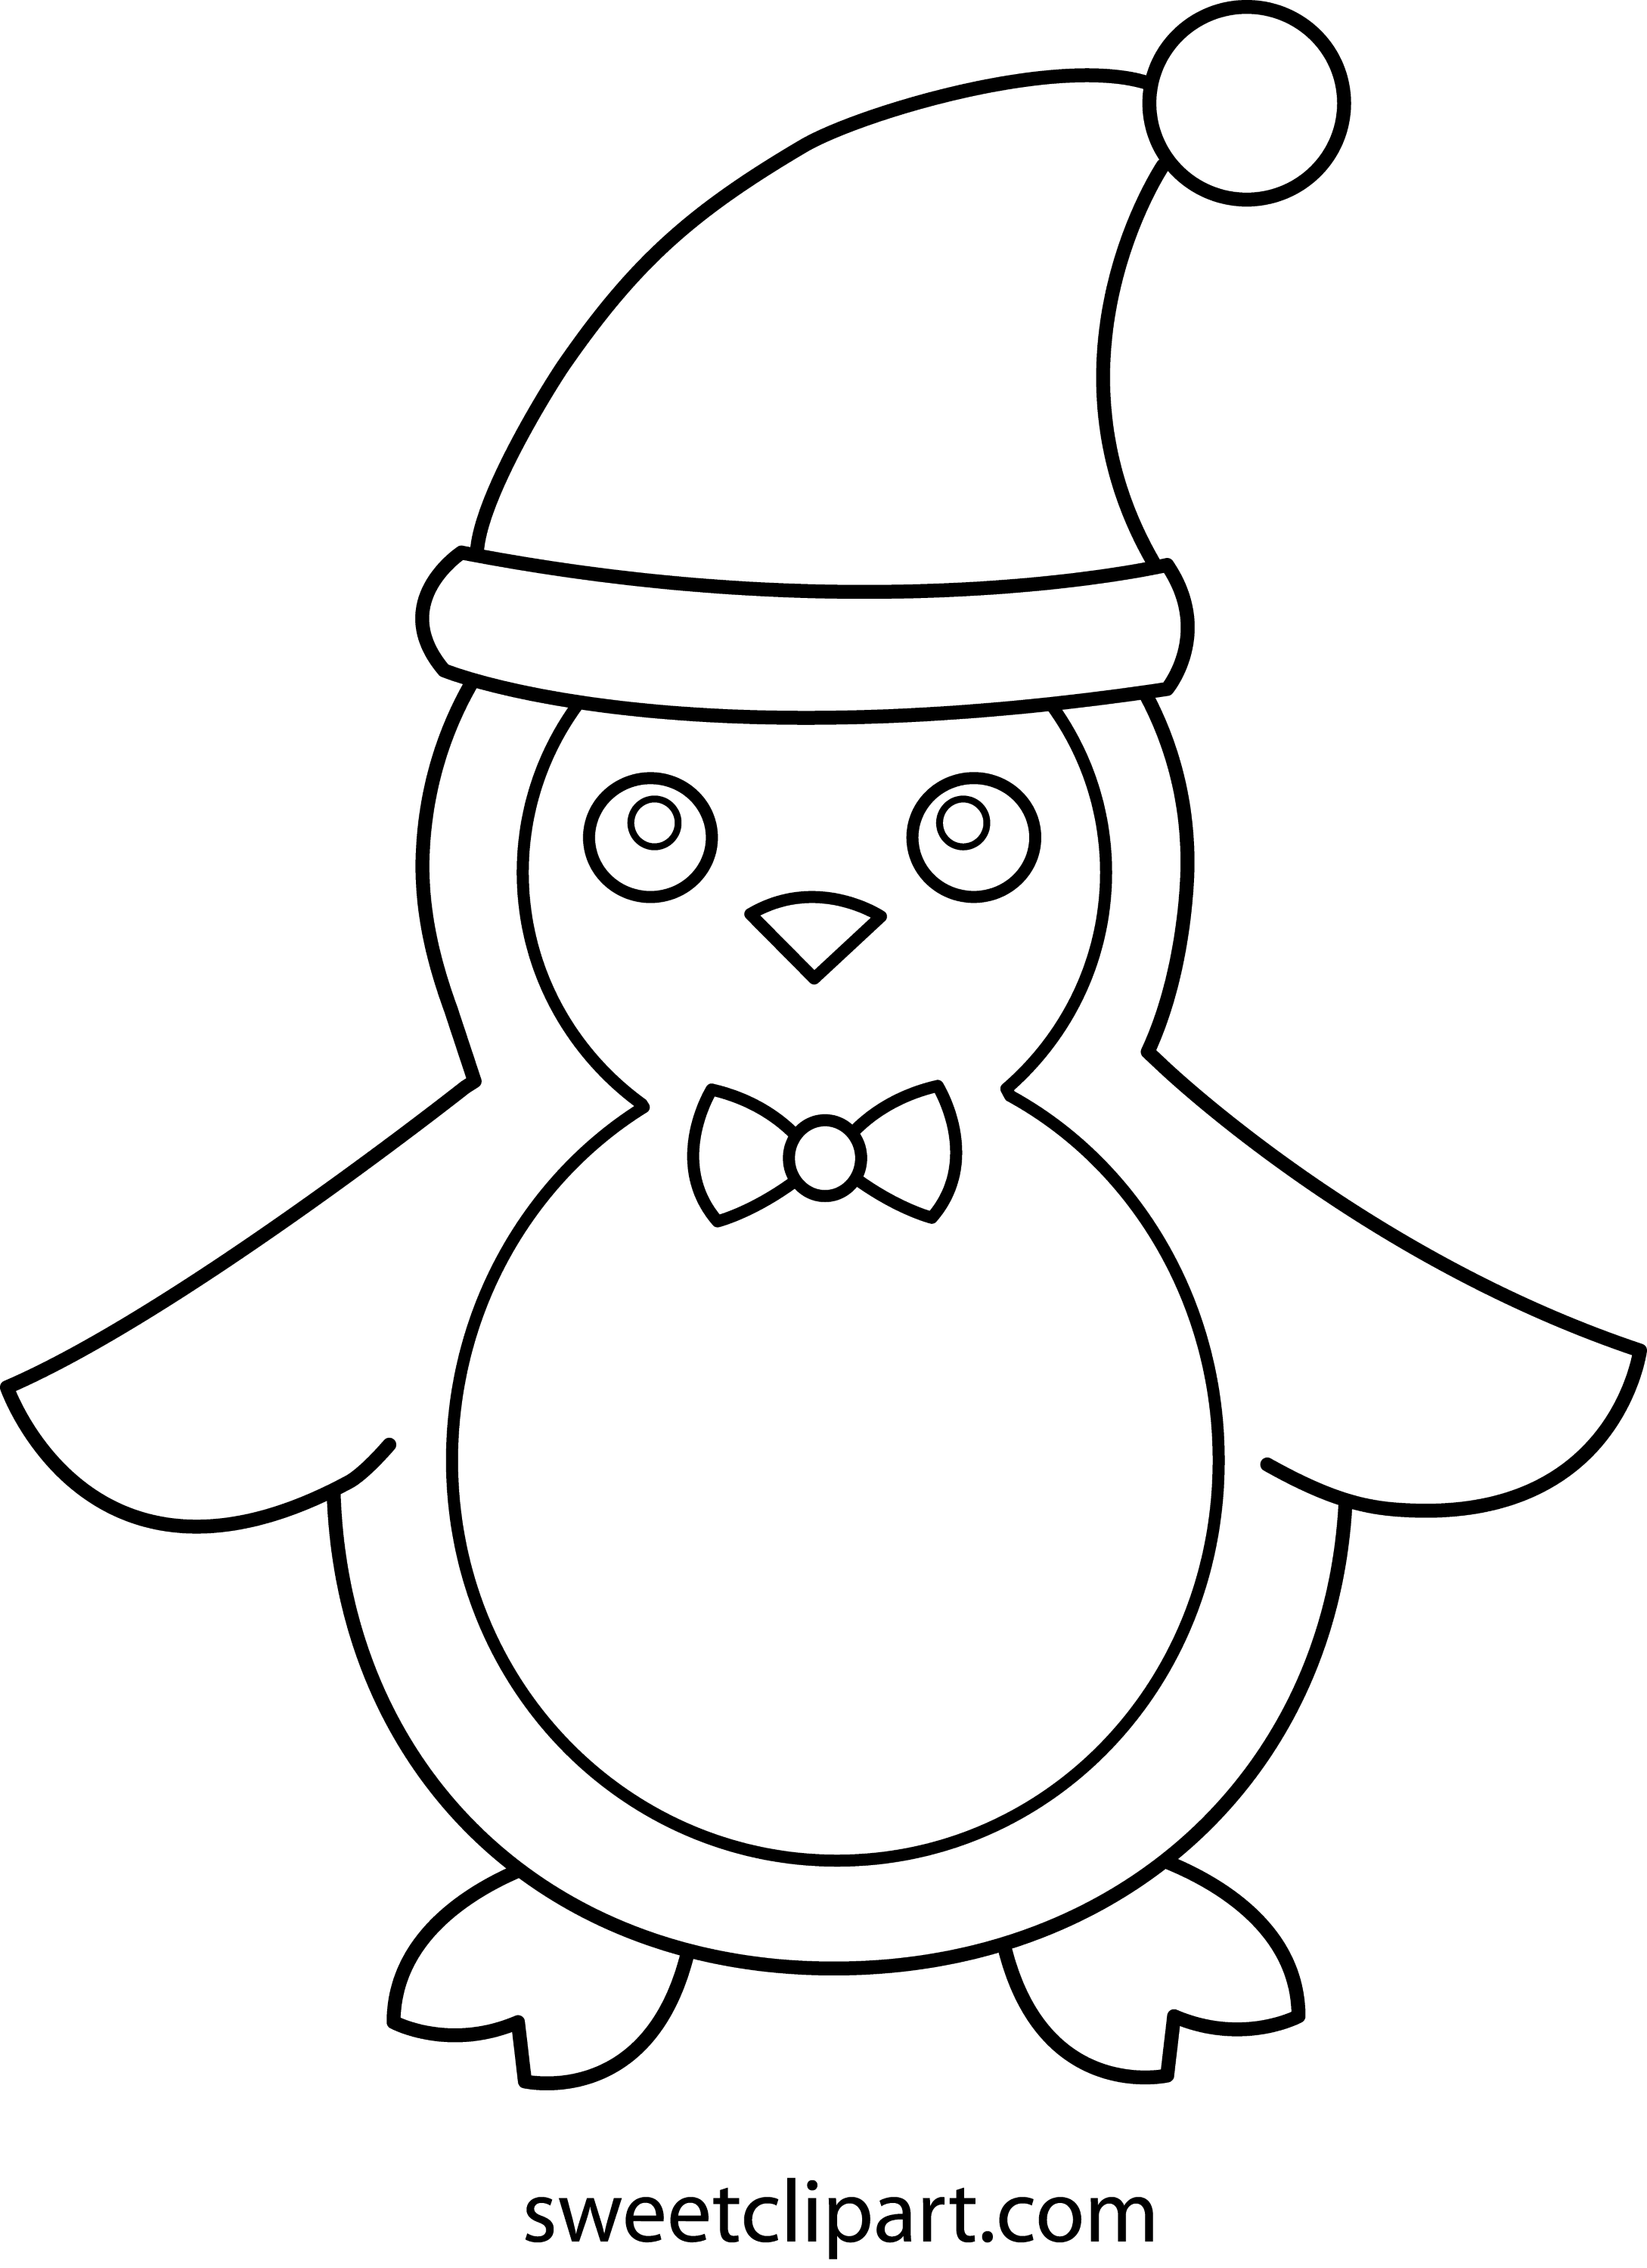 coloring christmas clipart black and white printable snowman clipart template coloring pages for kids and christmas black clipart white coloring